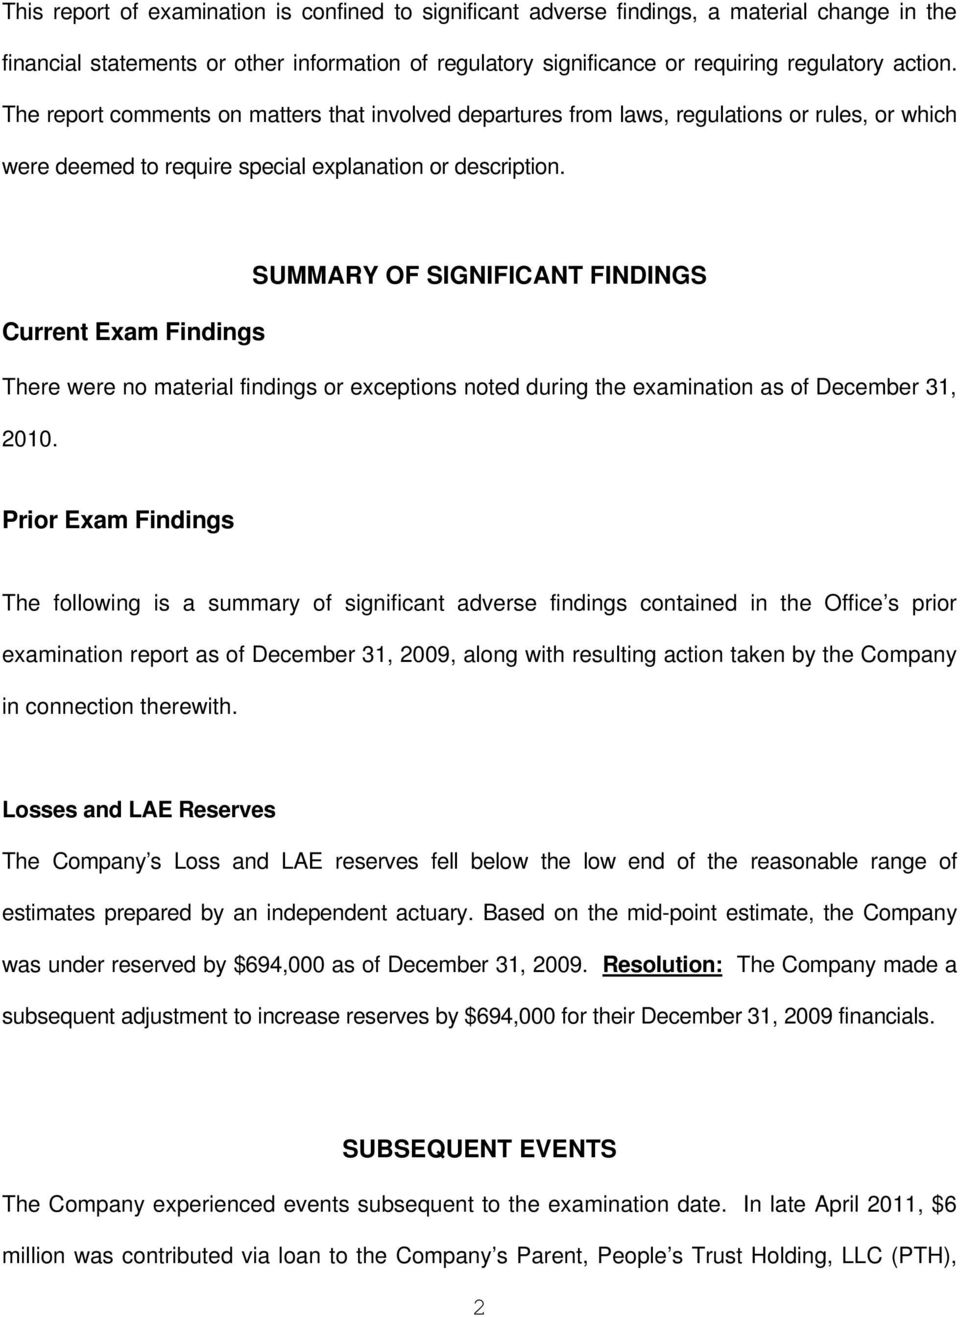 SUMMARY OF SIGNIFICANT FINDINGS Current Exam Findings There were no material findings or exceptions noted during the examination as of December 31, 2010.